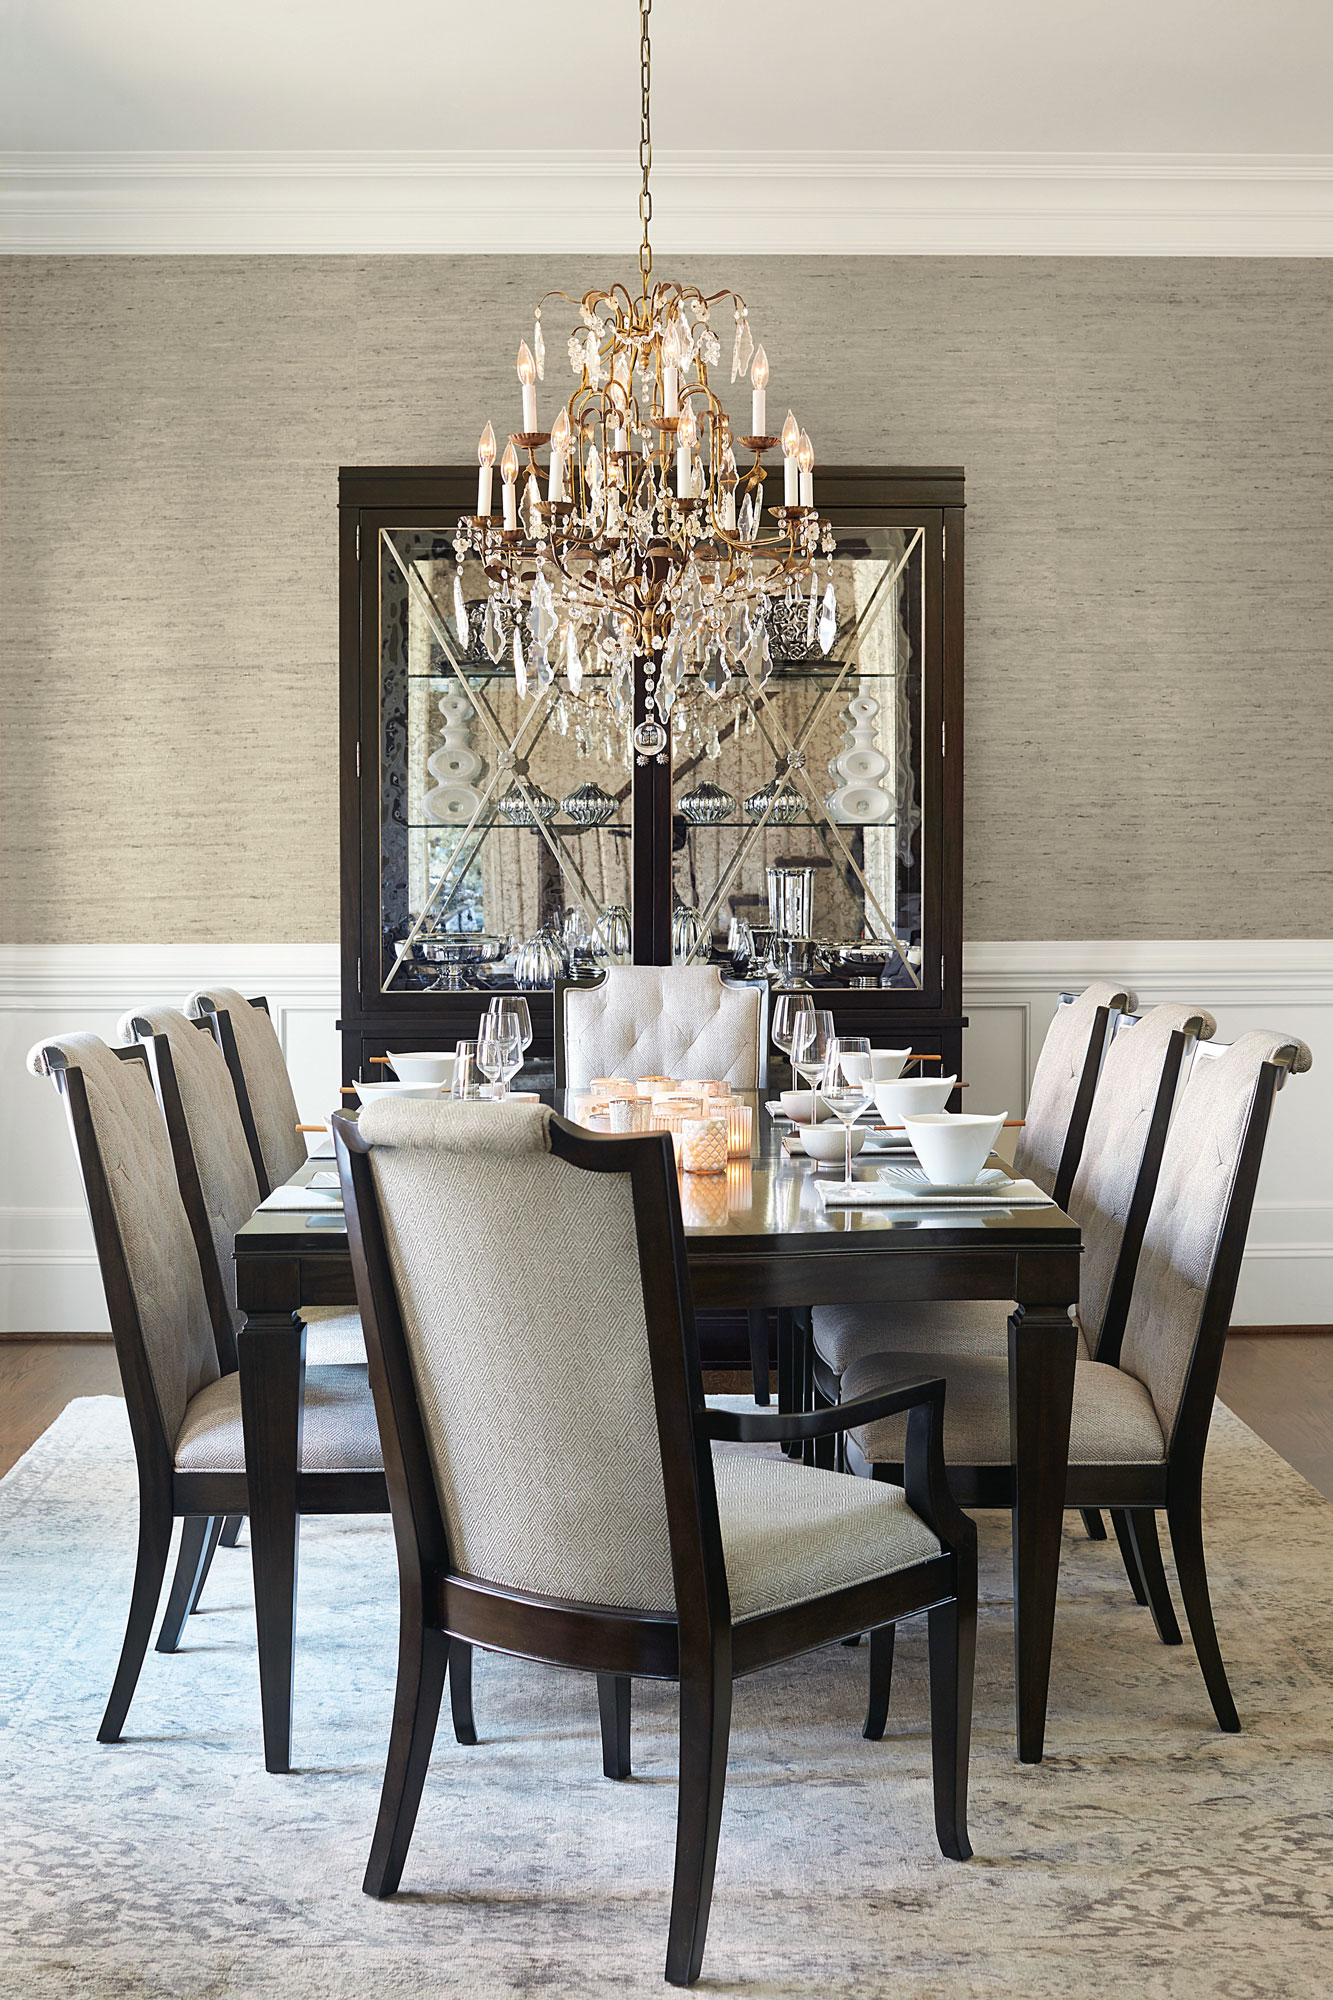 dining table 367 222 read more about dining table print share sutton